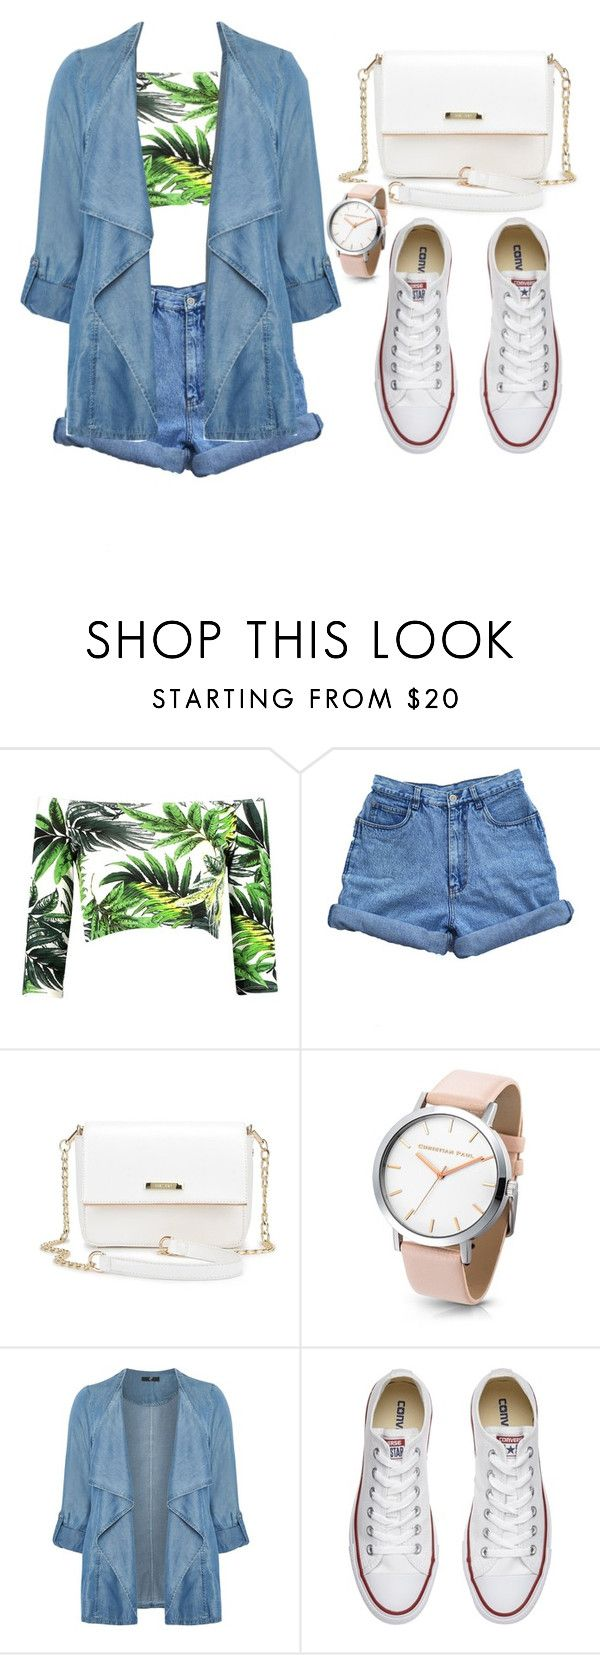 """Rio 2016"" by marianafvas ❤ liked on Polyvore featuring Boohoo, Bill Blass, Evans and Converse"